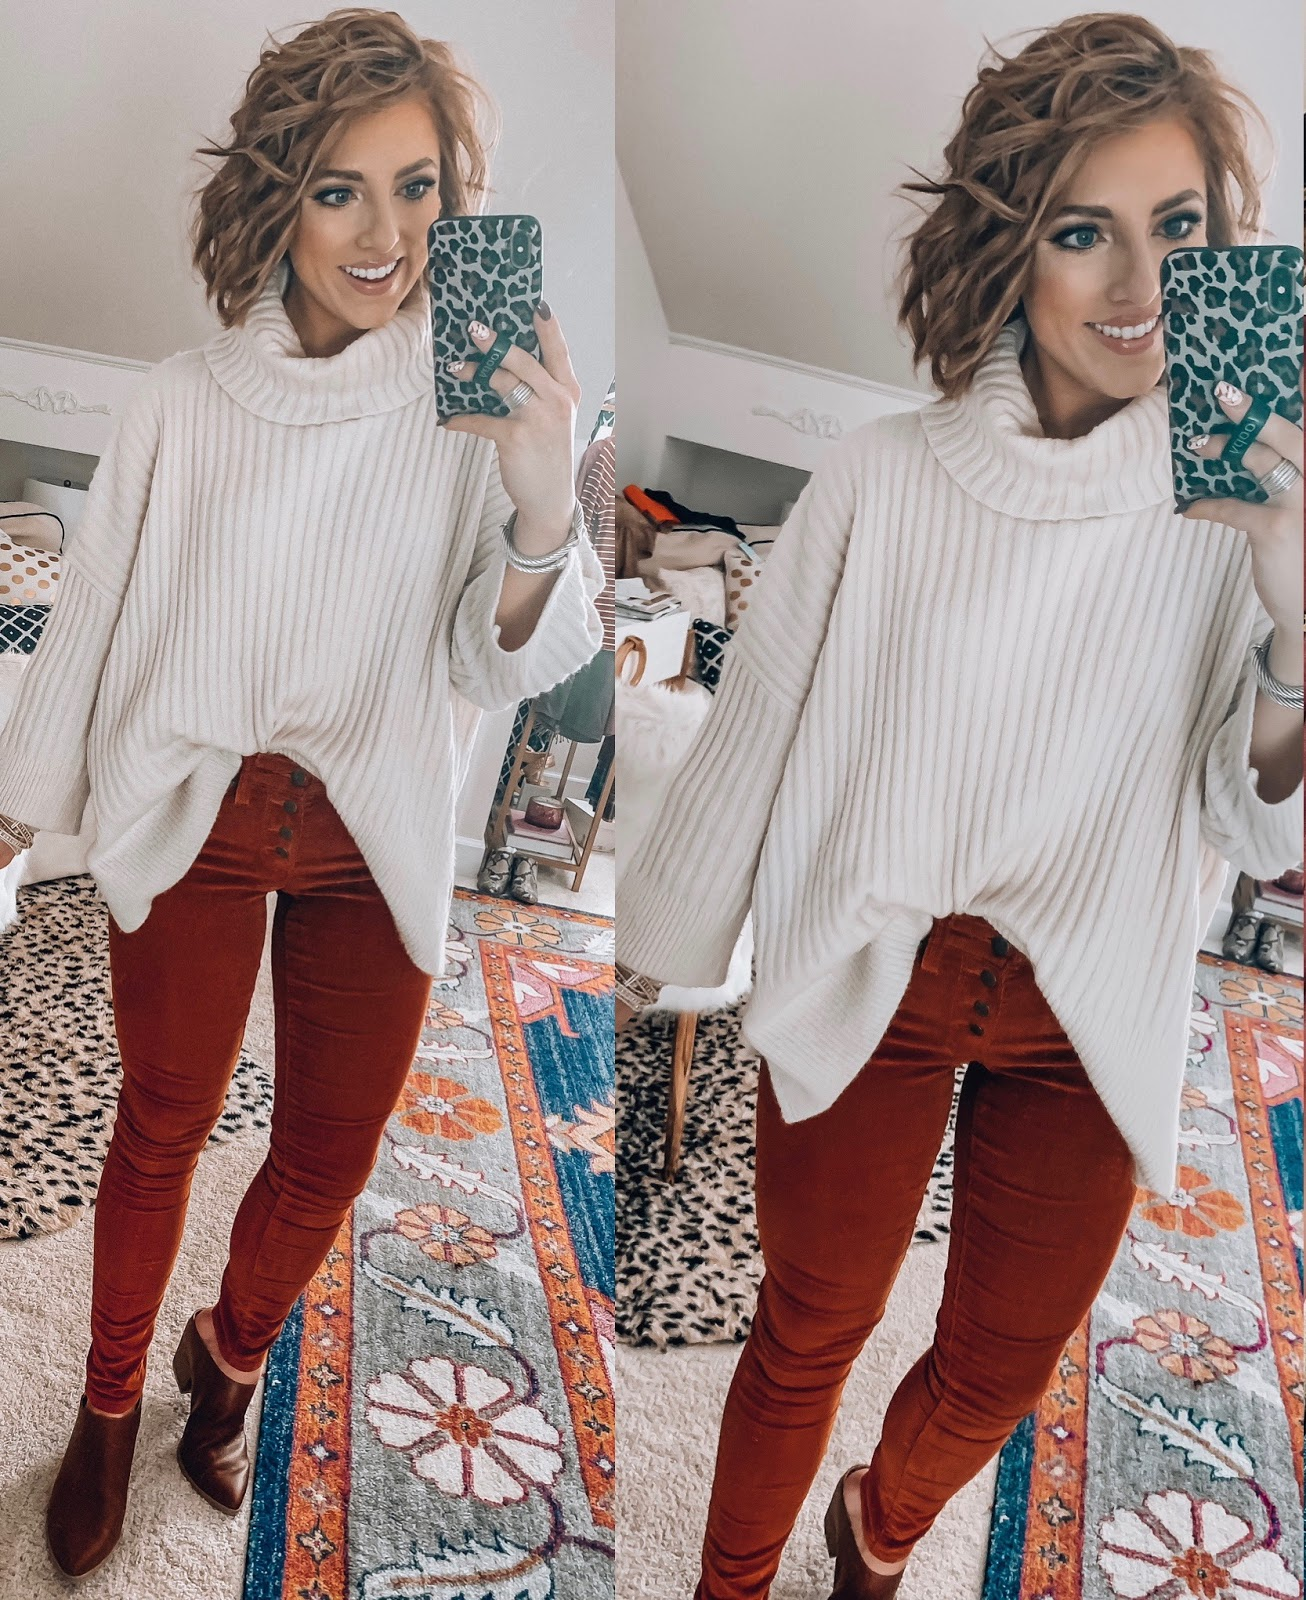 Target Fall Finds: Part Three - 3/4 Sleeve Turtleneck Sweater, Cord Pants - Something Delightful Blog #FallStyle #TargetStye